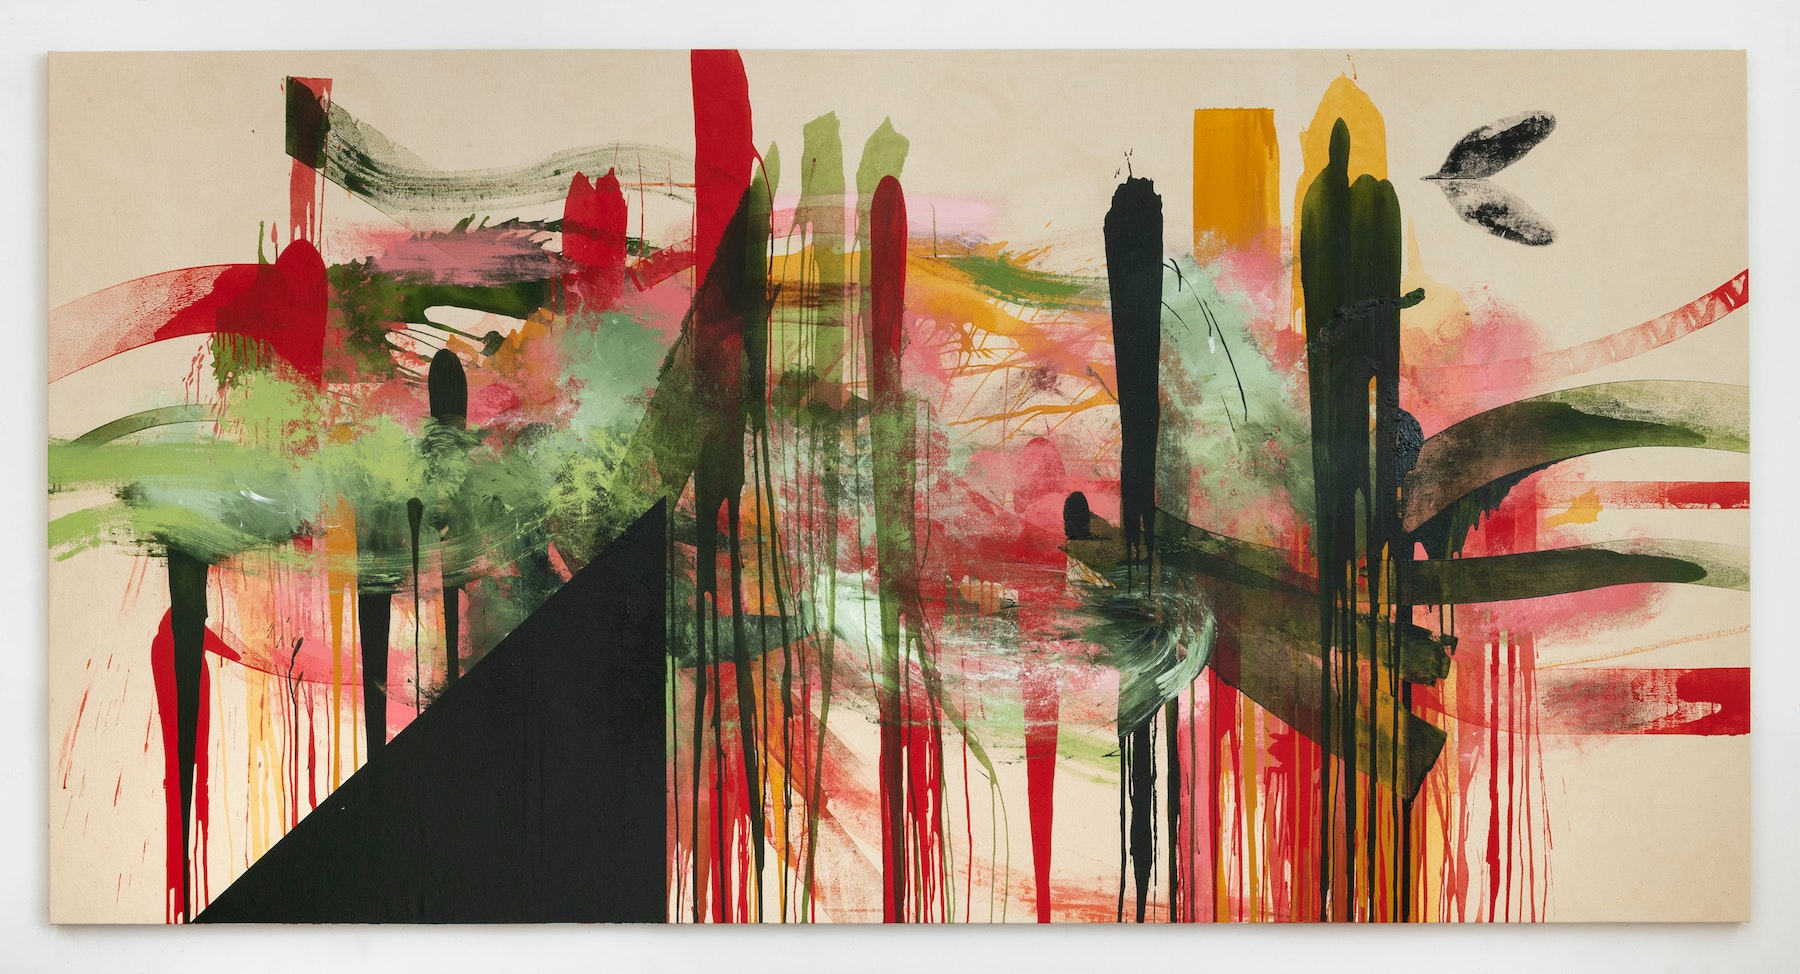 """Elizabeth Neel """"Facing the Further,"""" 2020 Acrylic on canvas 78"""" x 12' 6"""" [HxW] (198.12 x 381 cm) Inventory #NEE252 Courtesy of the artist and Vielmetter Los Angeles Photocredit Adam Reich, NY"""